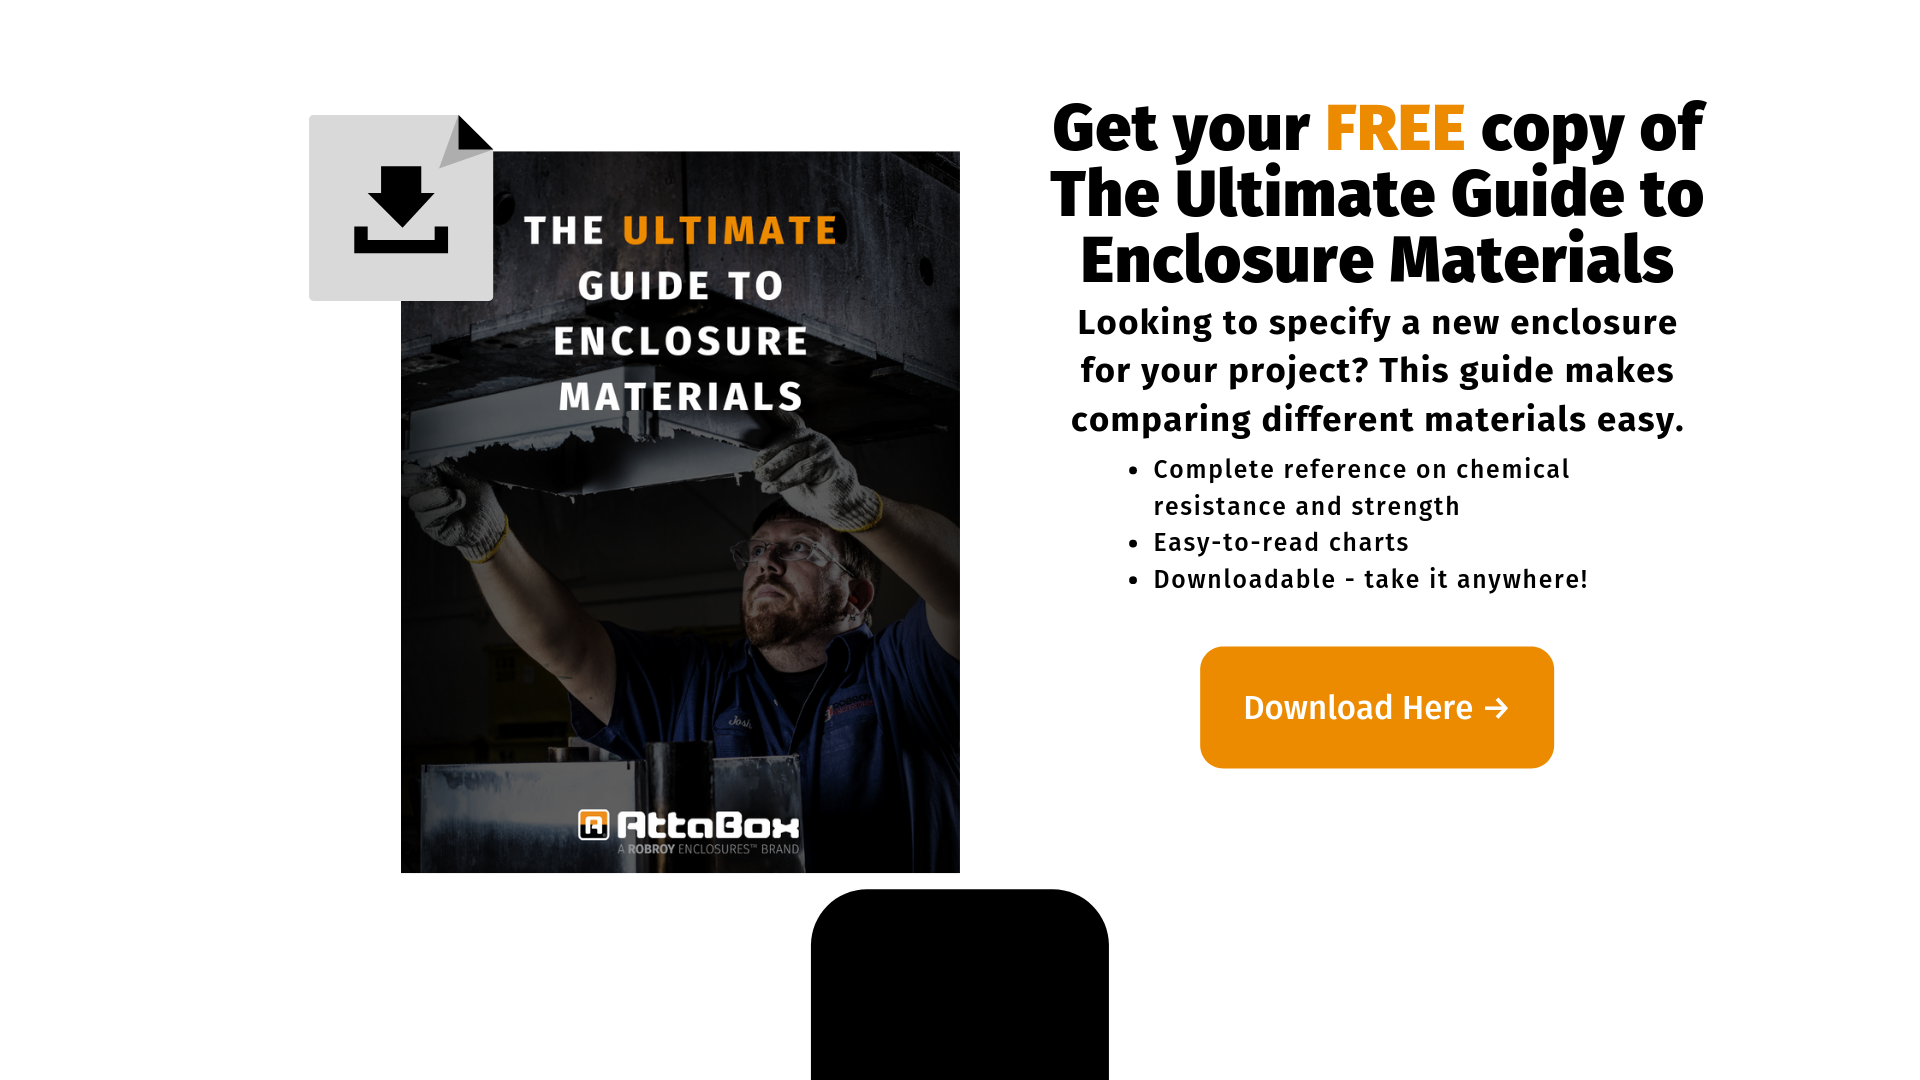 Get your FREE copy of The Ultimate Guide to Enclosure Materials